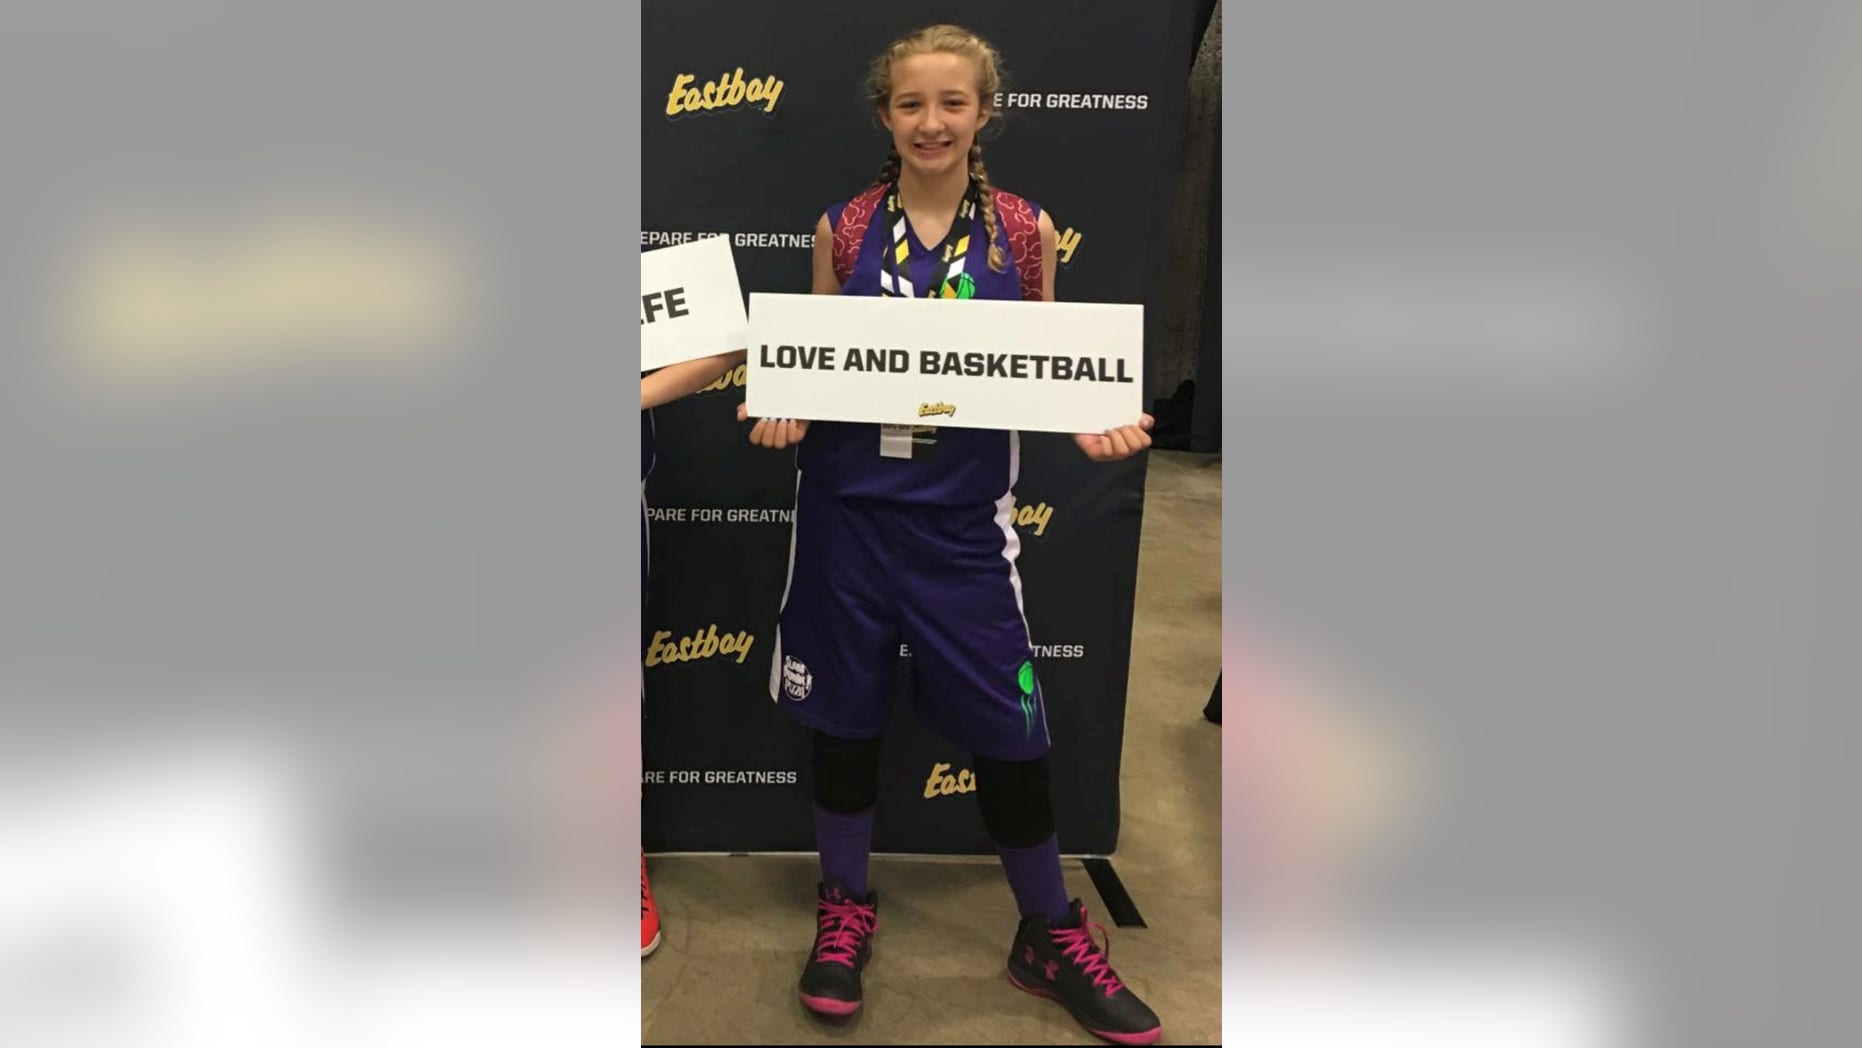 An 11-year-old and her mother challenged a school's 40-year dress code tradition after the basketball player was benched because she did not wear a dress to school.